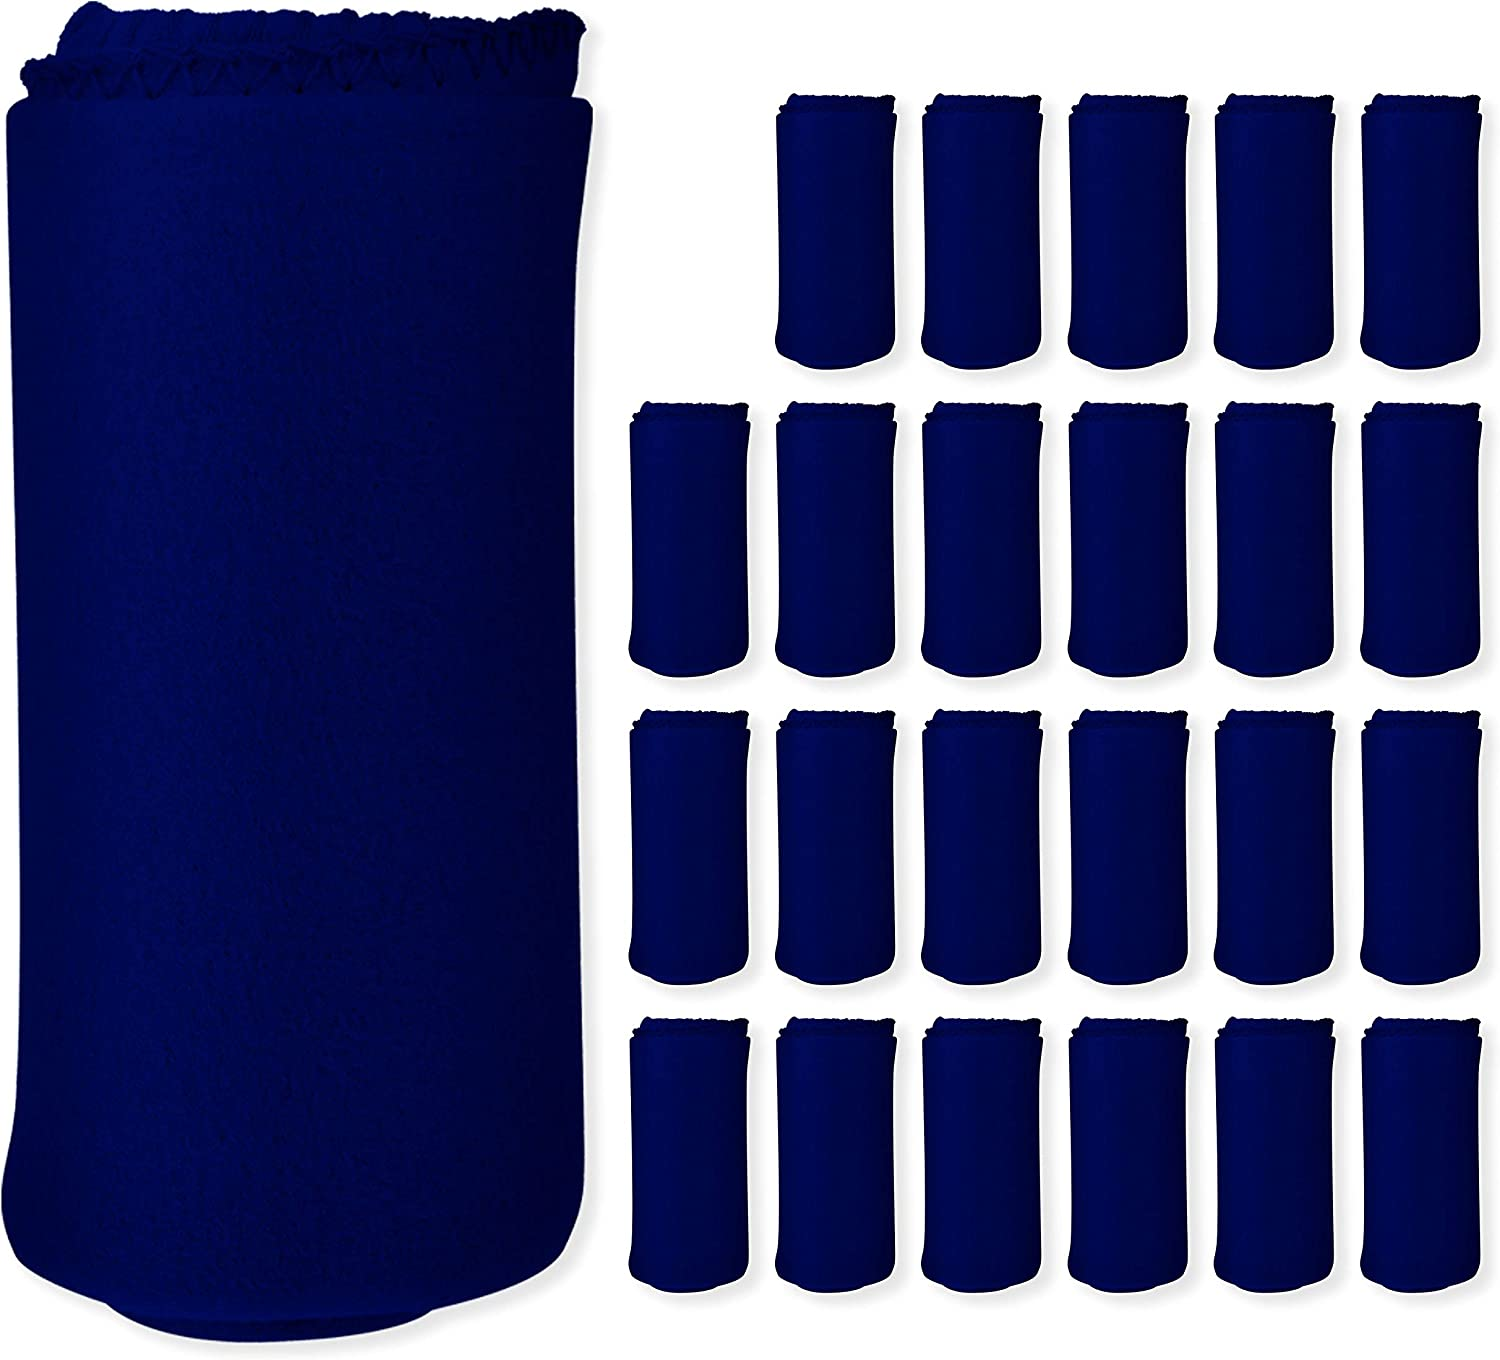 Imperial Home 24 Pack Wholesale Soft Fleece Brand Cheap Sale Venue Ranking TOP10 Blankets - 50